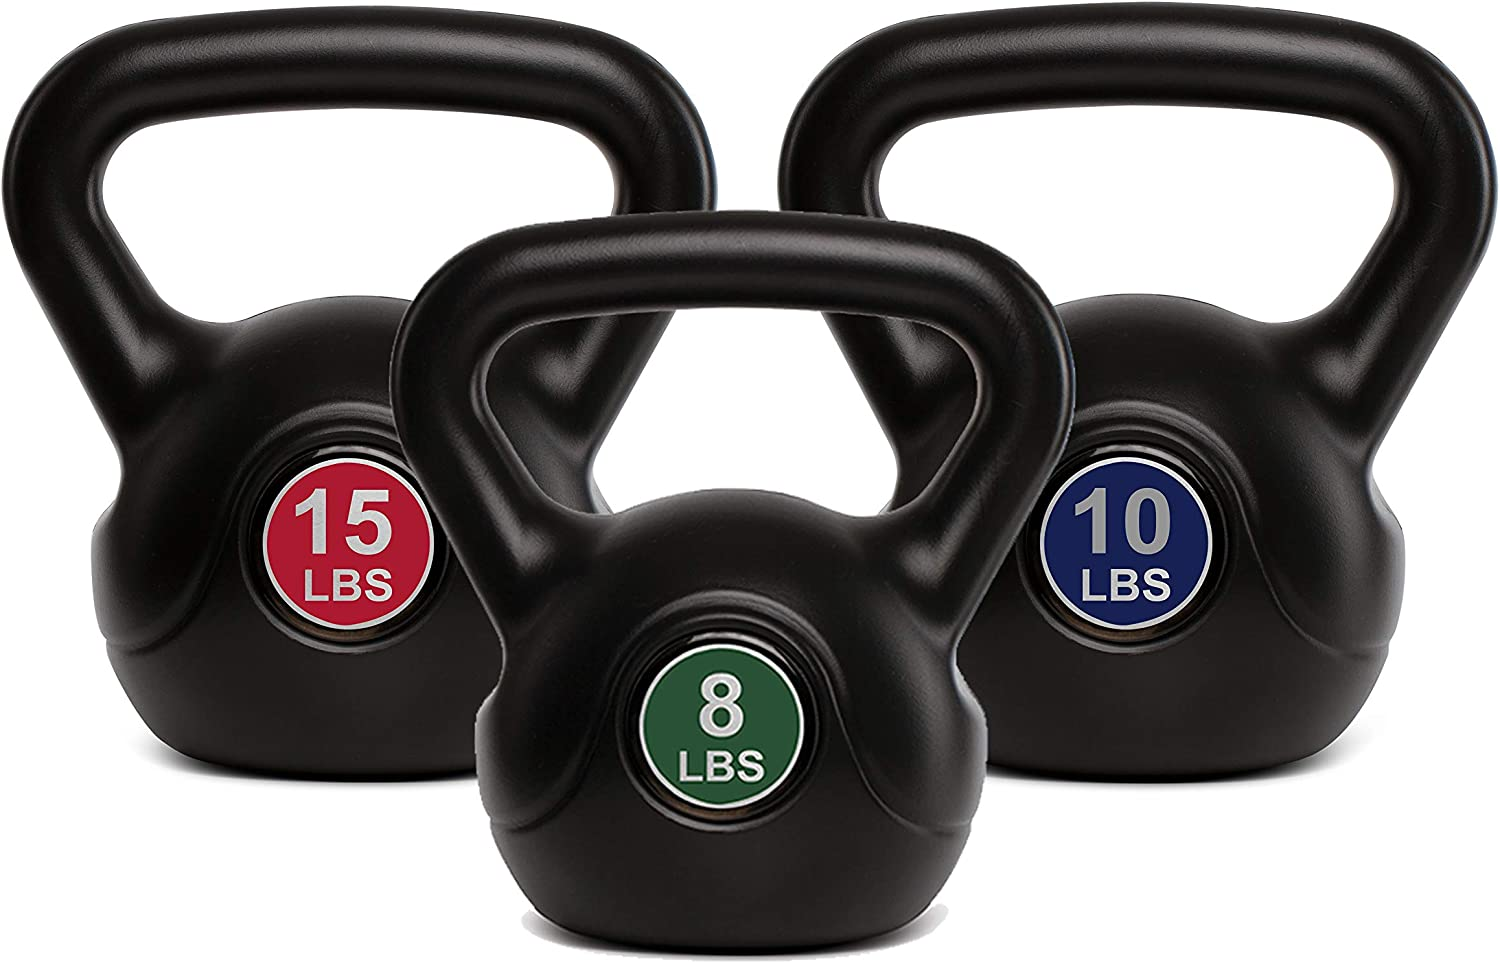 Dumbbell Weight Plastic Shell 10 lb,15lb Weights Men Fat Burning 8 lb Weightlifting TKO Kettlebell Soft Neoprene Home Gym Workouts Women Core Fitness